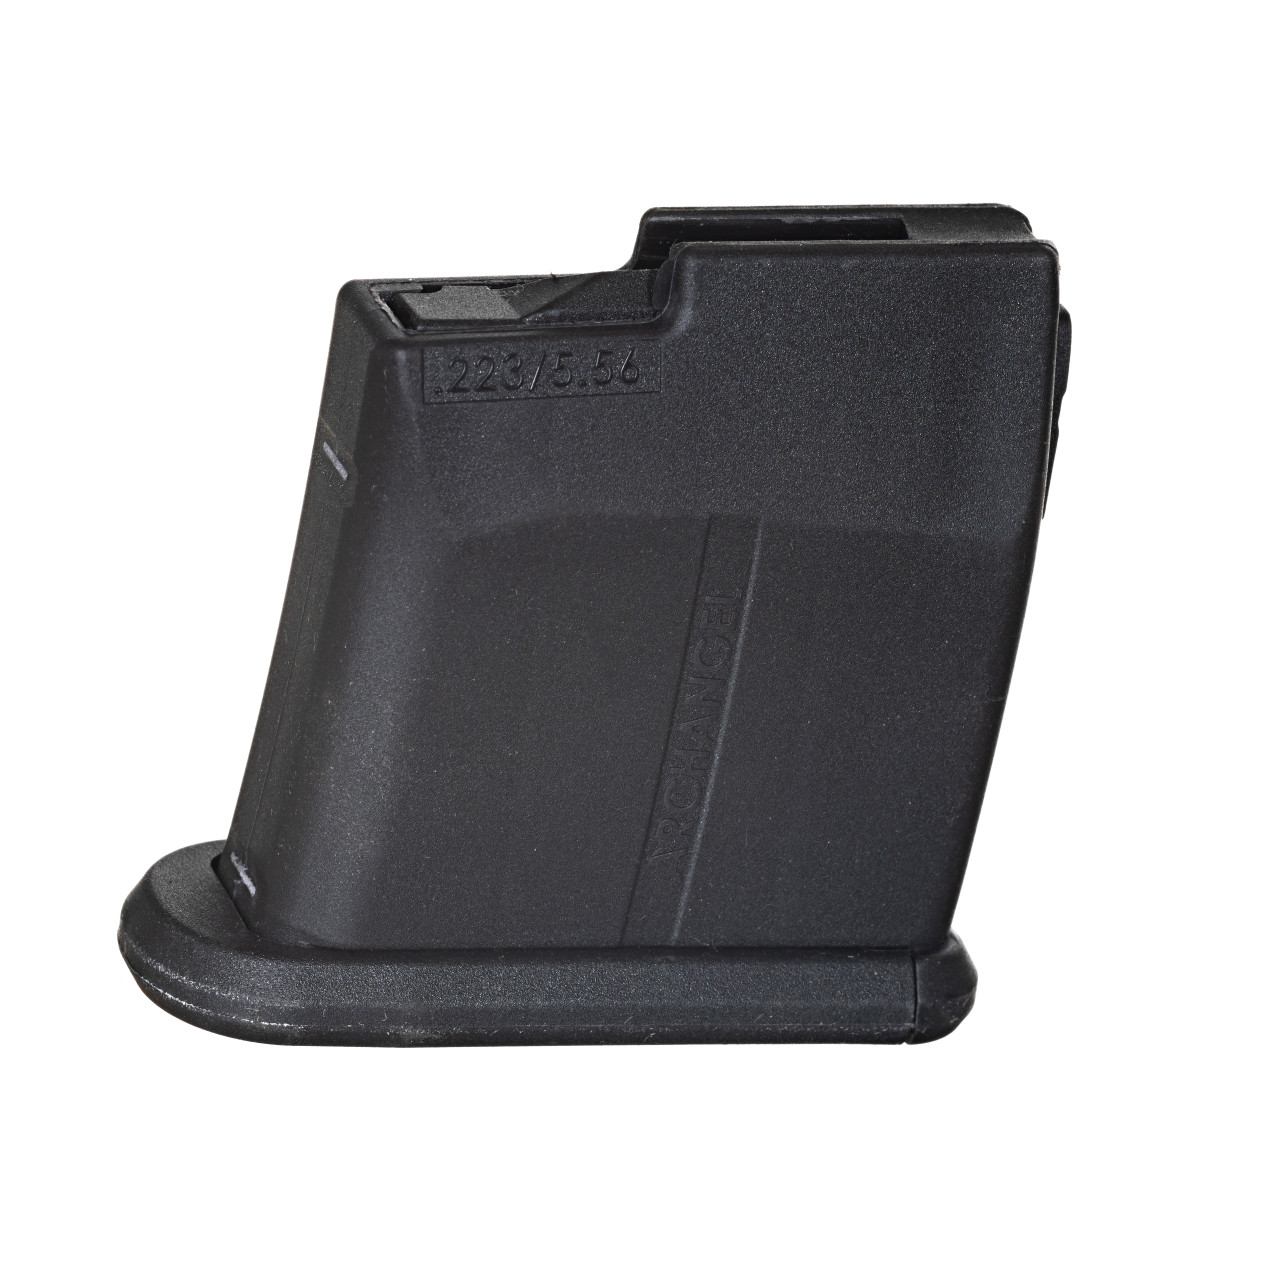 Archangel® Short Action .223 Based Cartridges TYPE D Magazine for AA700SA / AA1500SA / AAS10 Precision Elite Stocks (10) Rd - Black Polymer